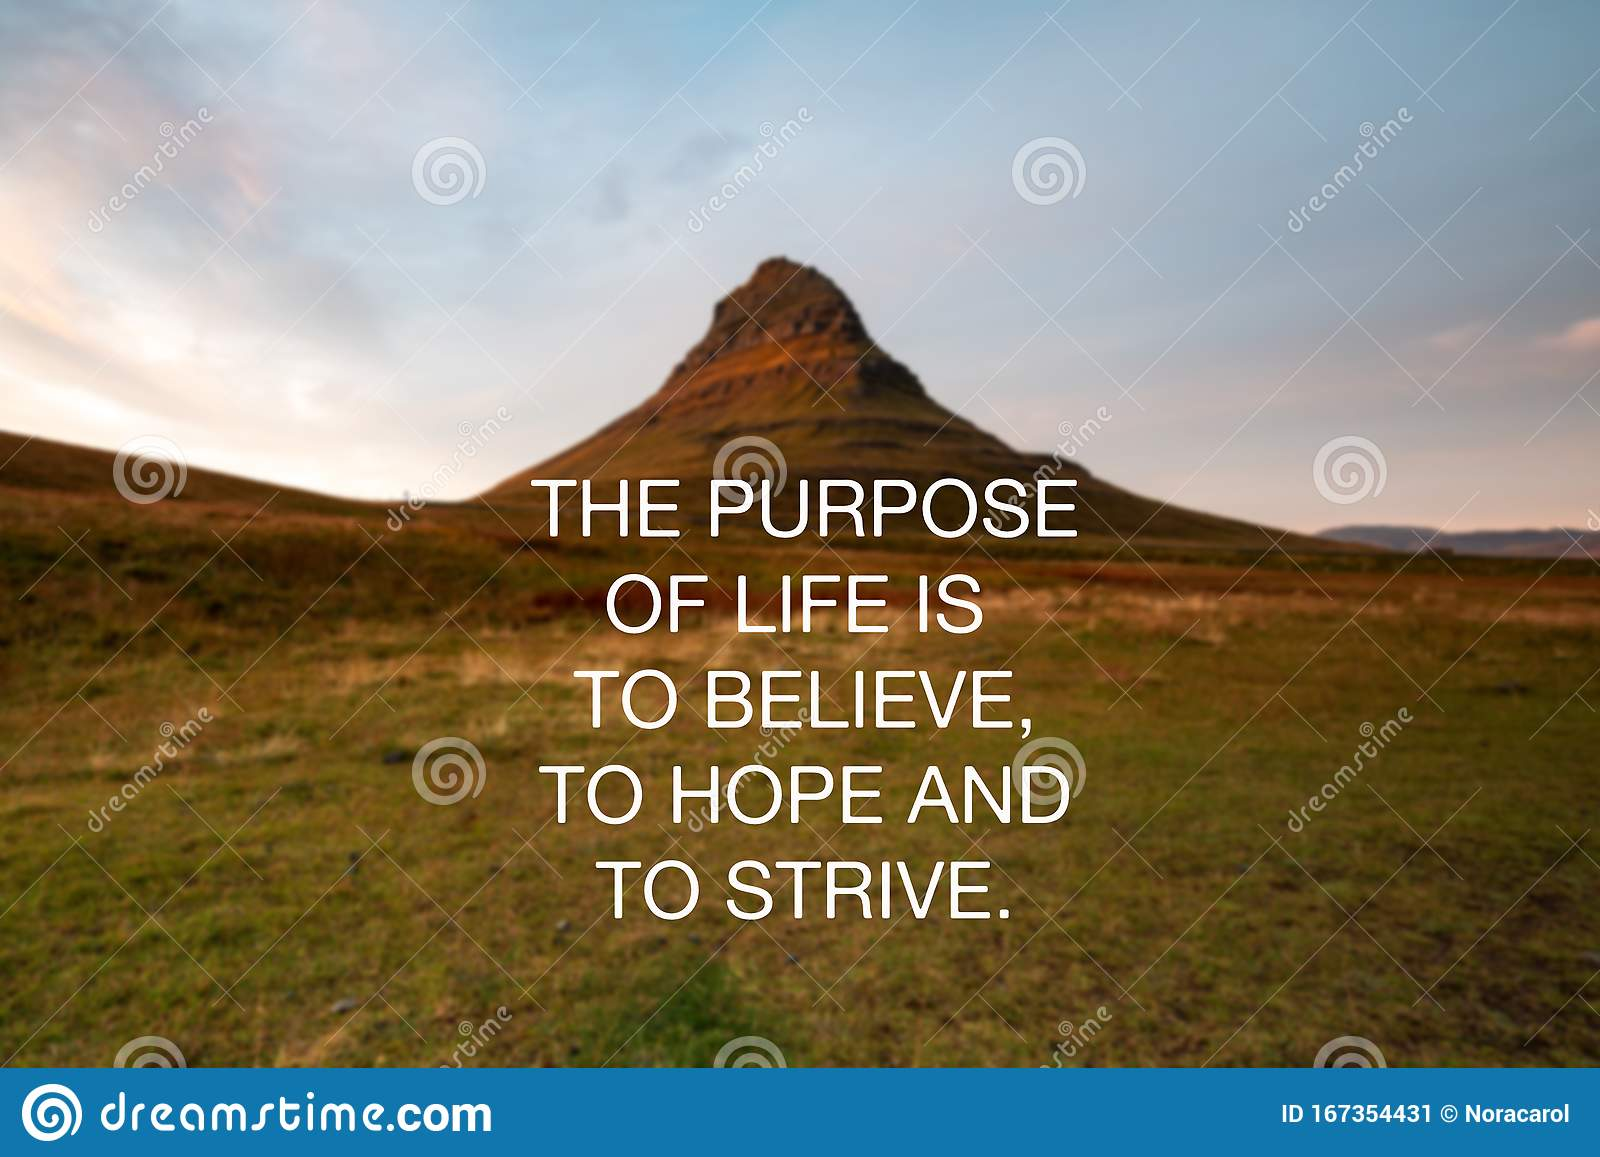 Inspirational Quotes The Purpose Of Life Is To Believe To Hope And To Strive Stock Image Image Of Quotes Hope 167354431